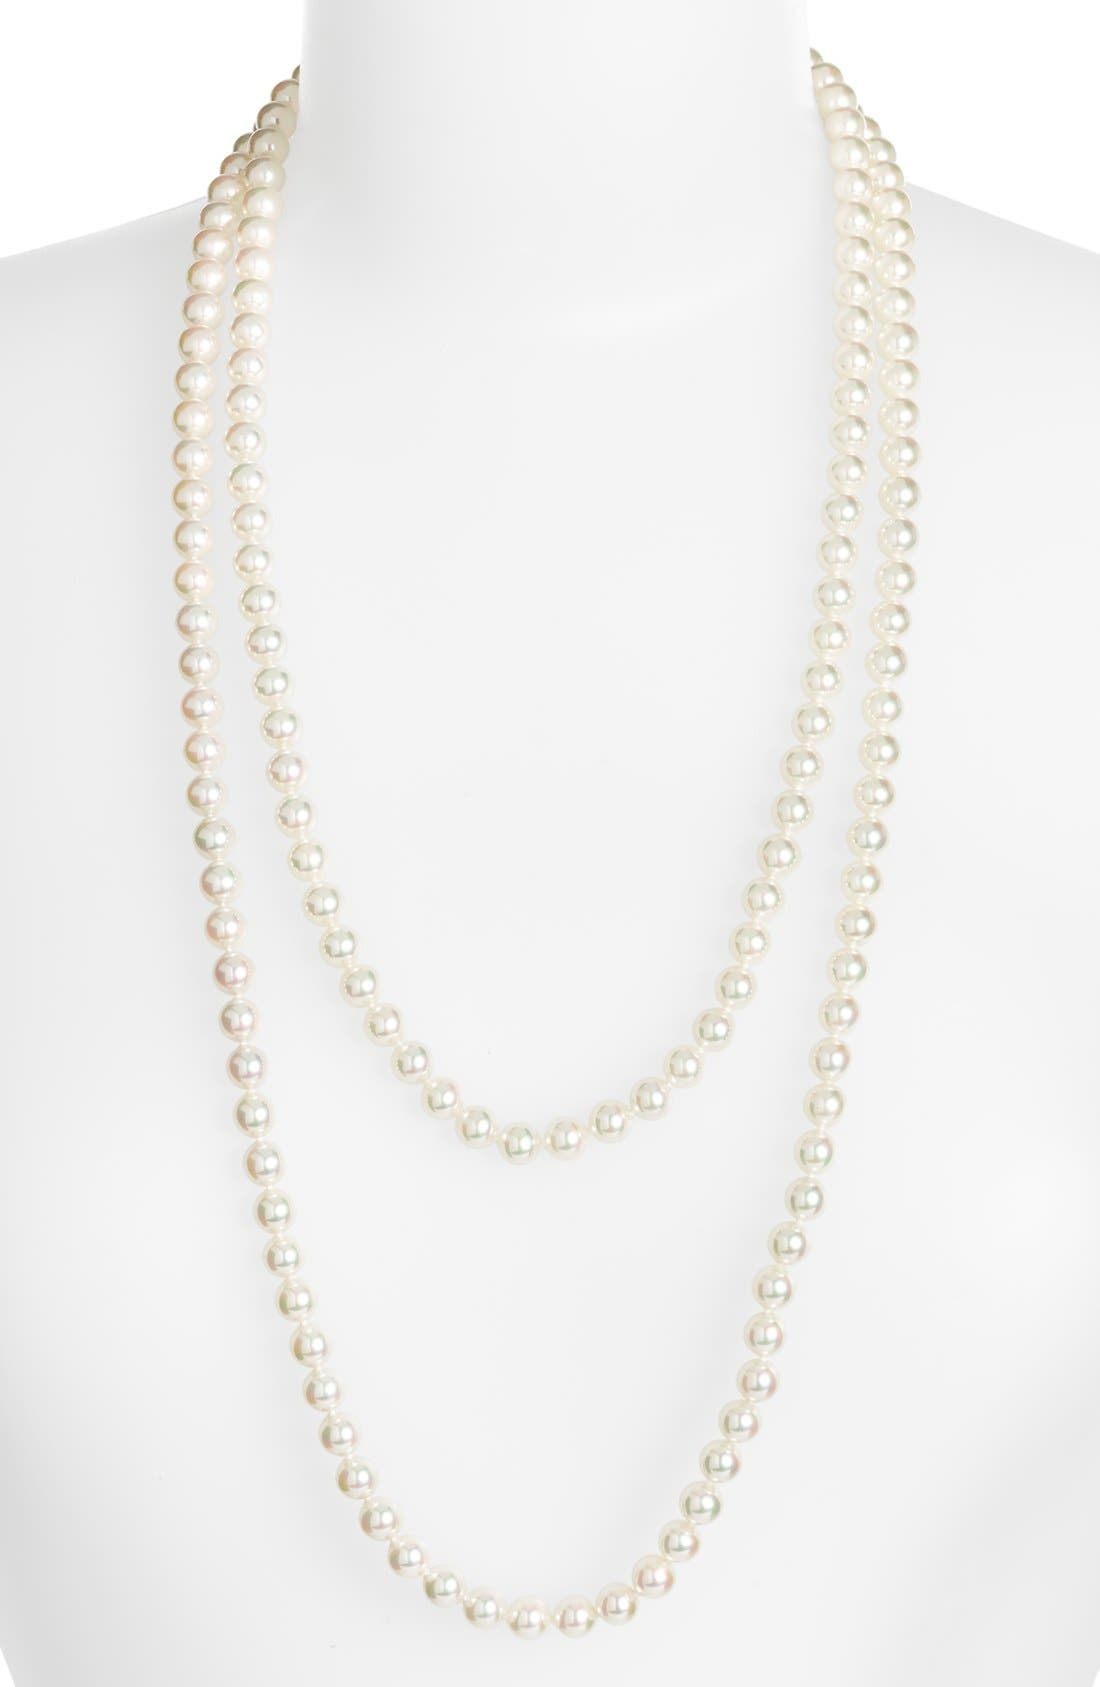 7mm Round Pearl Endless Rope Necklace,                             Alternate thumbnail 2, color,                             WHITE/ SILVER